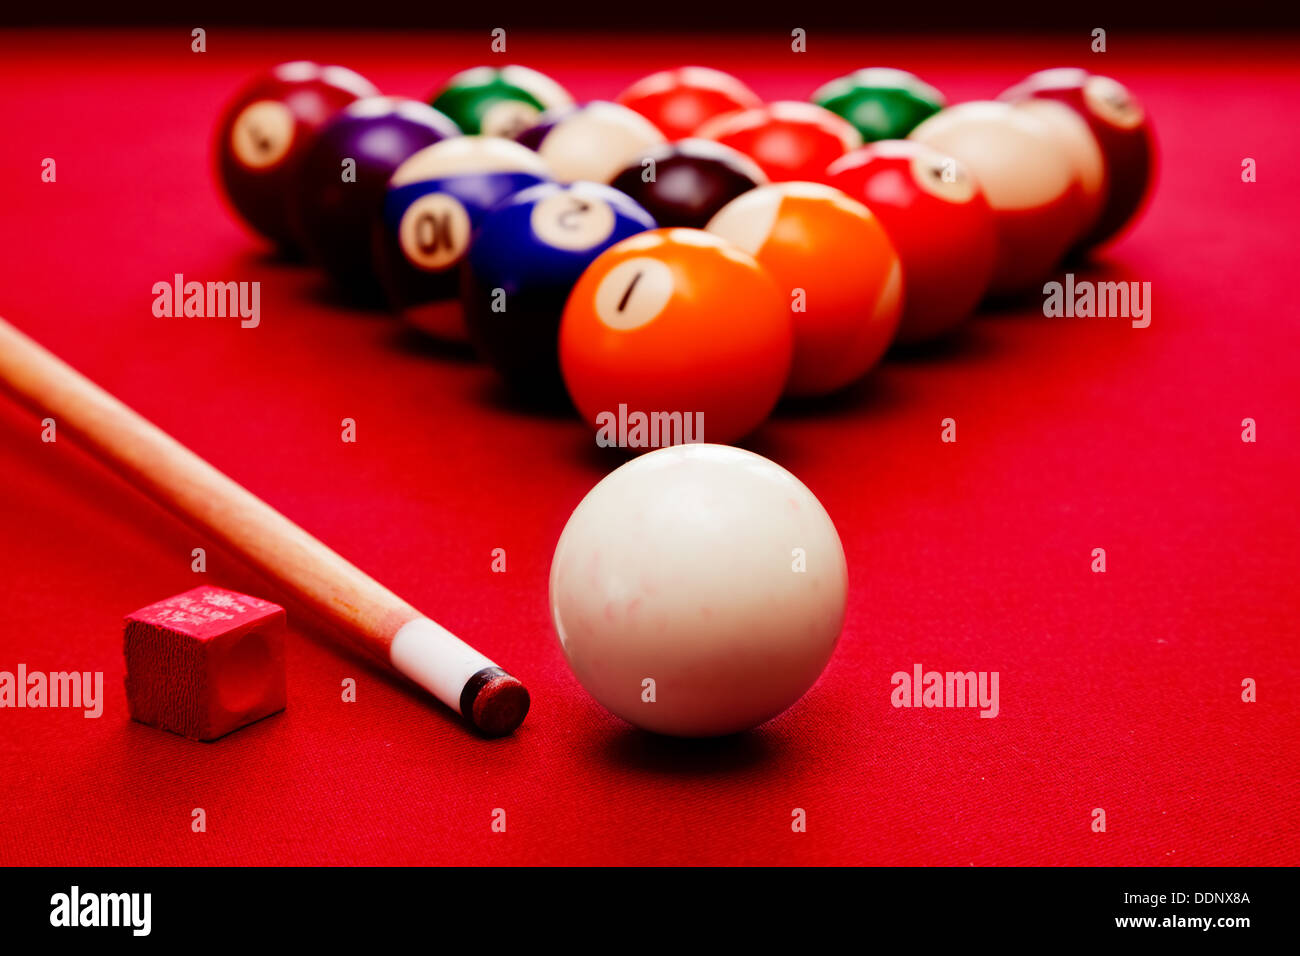 Billiards Pool Game. Cue Ball, Cue, Color Balls In Triangle, Chalk. Red  Cloth Table